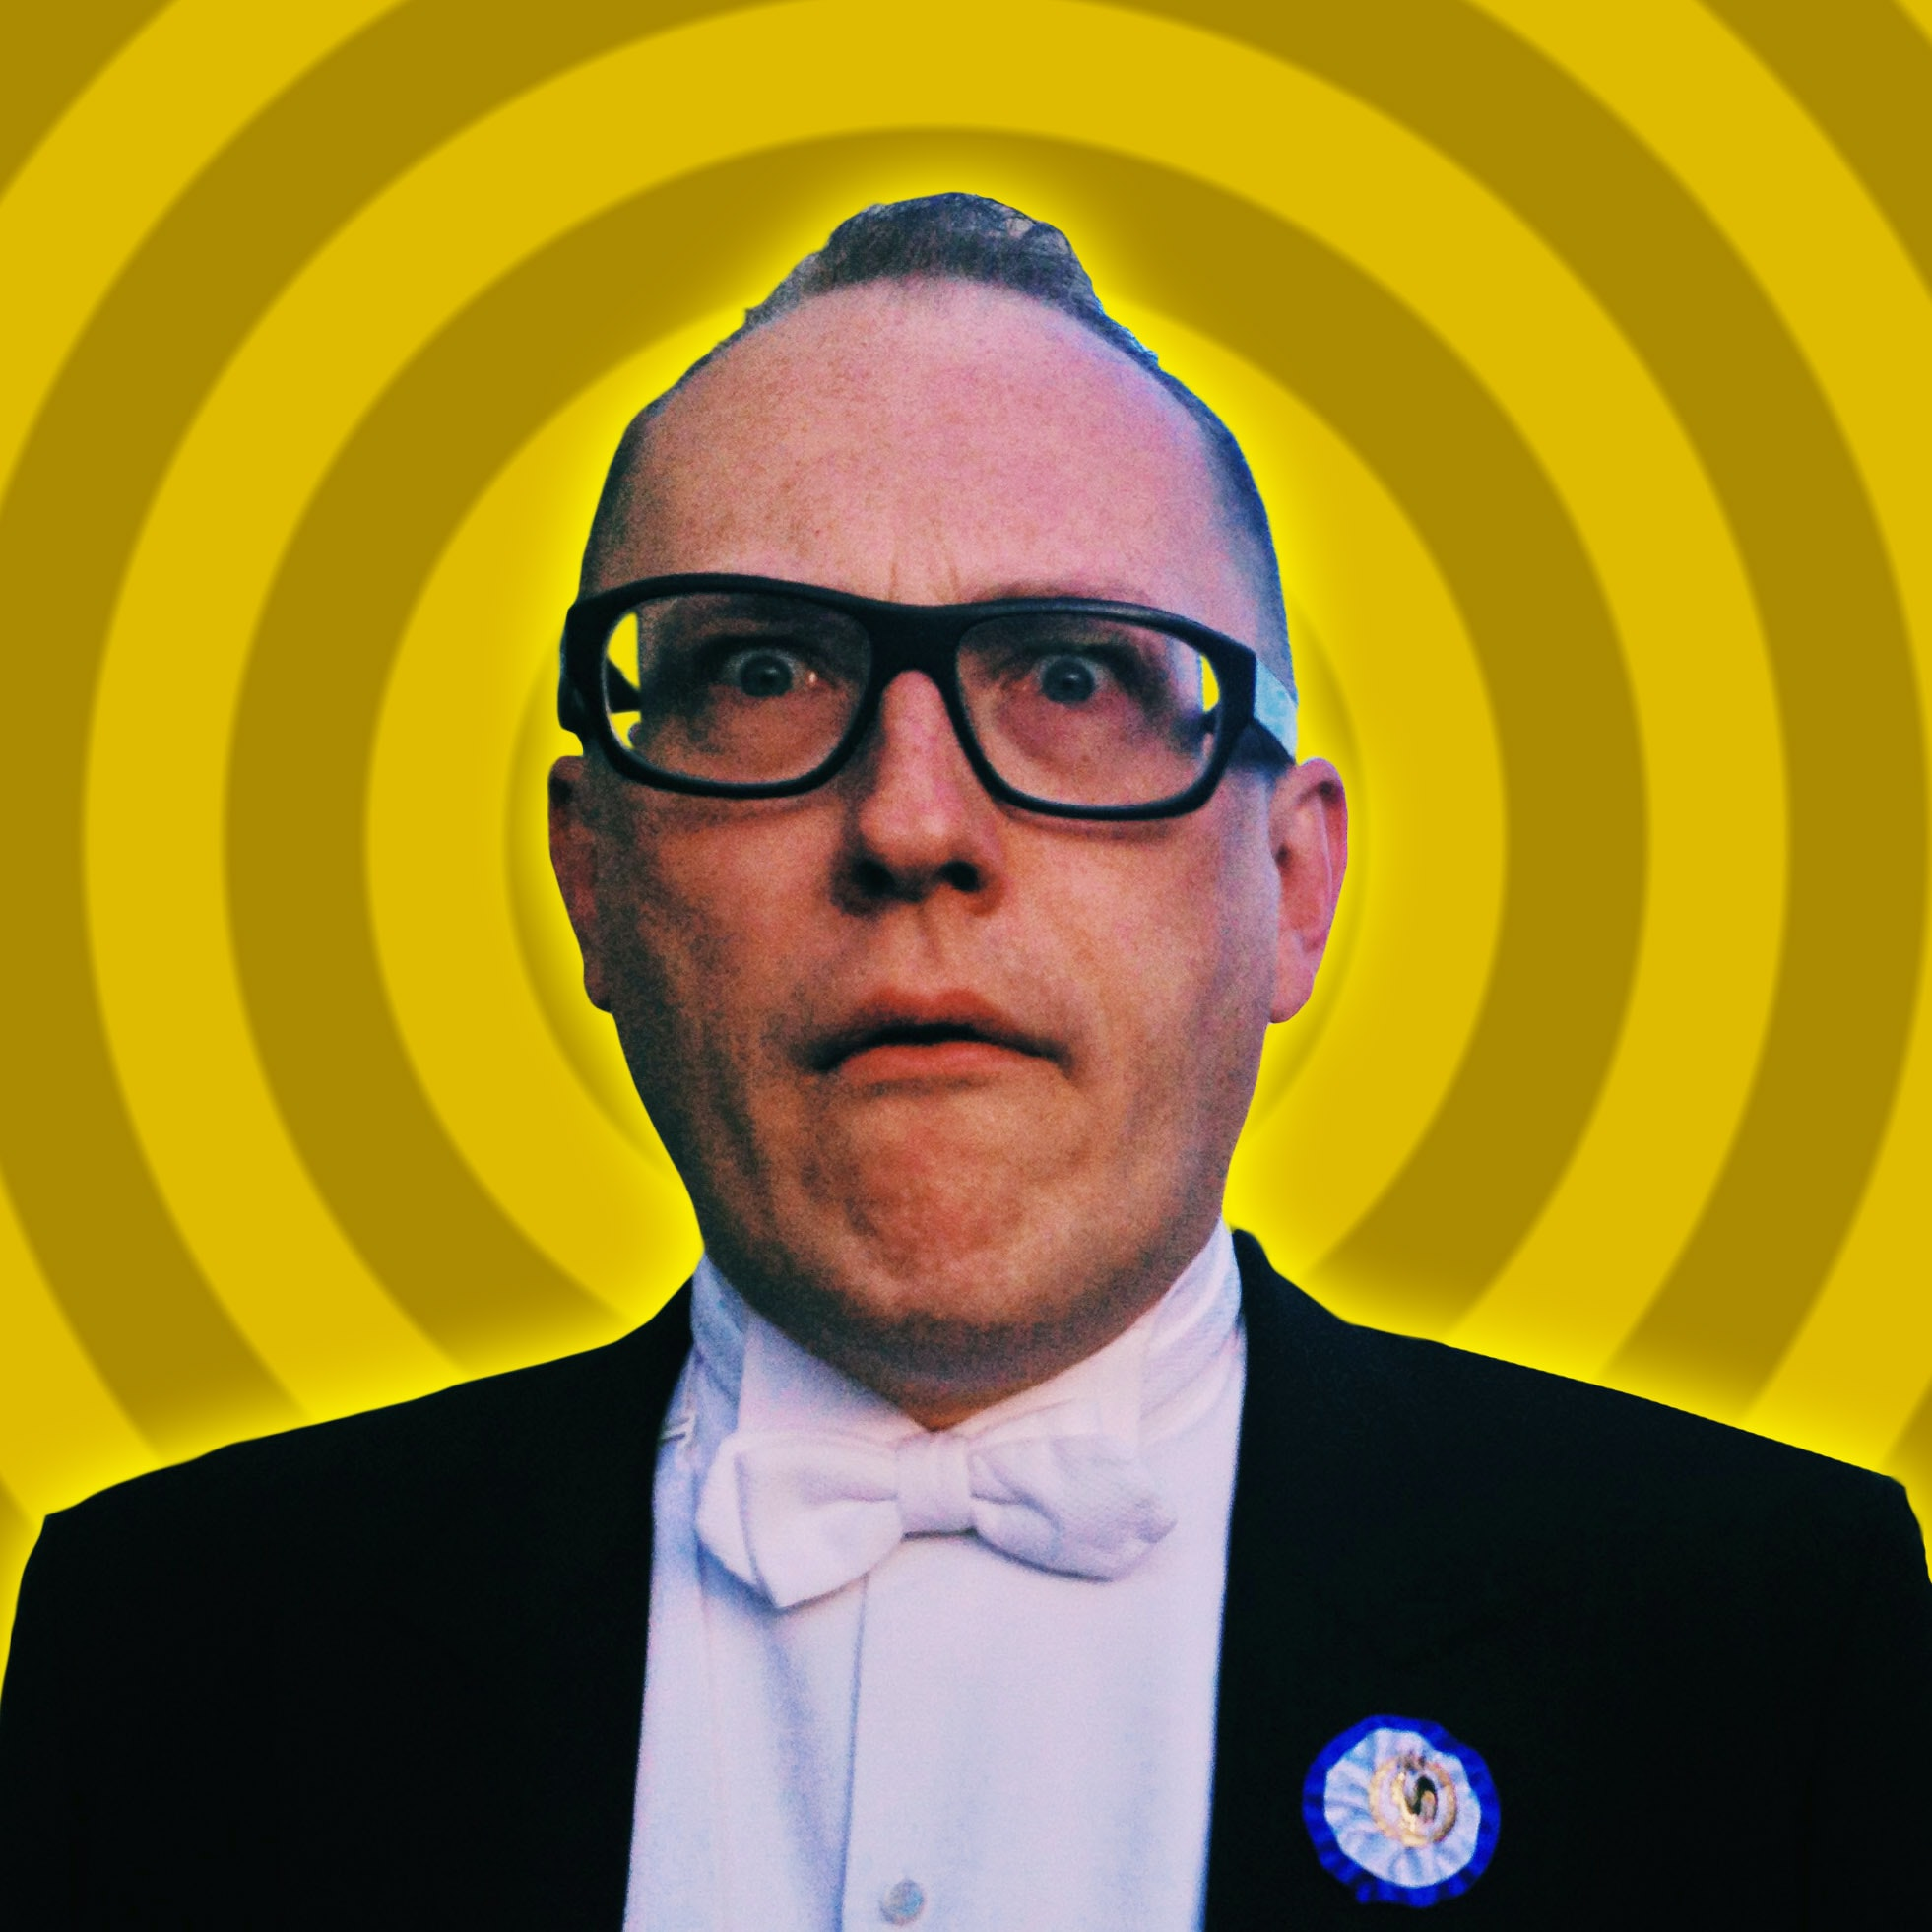 Avatar of user Esko Kumpunen